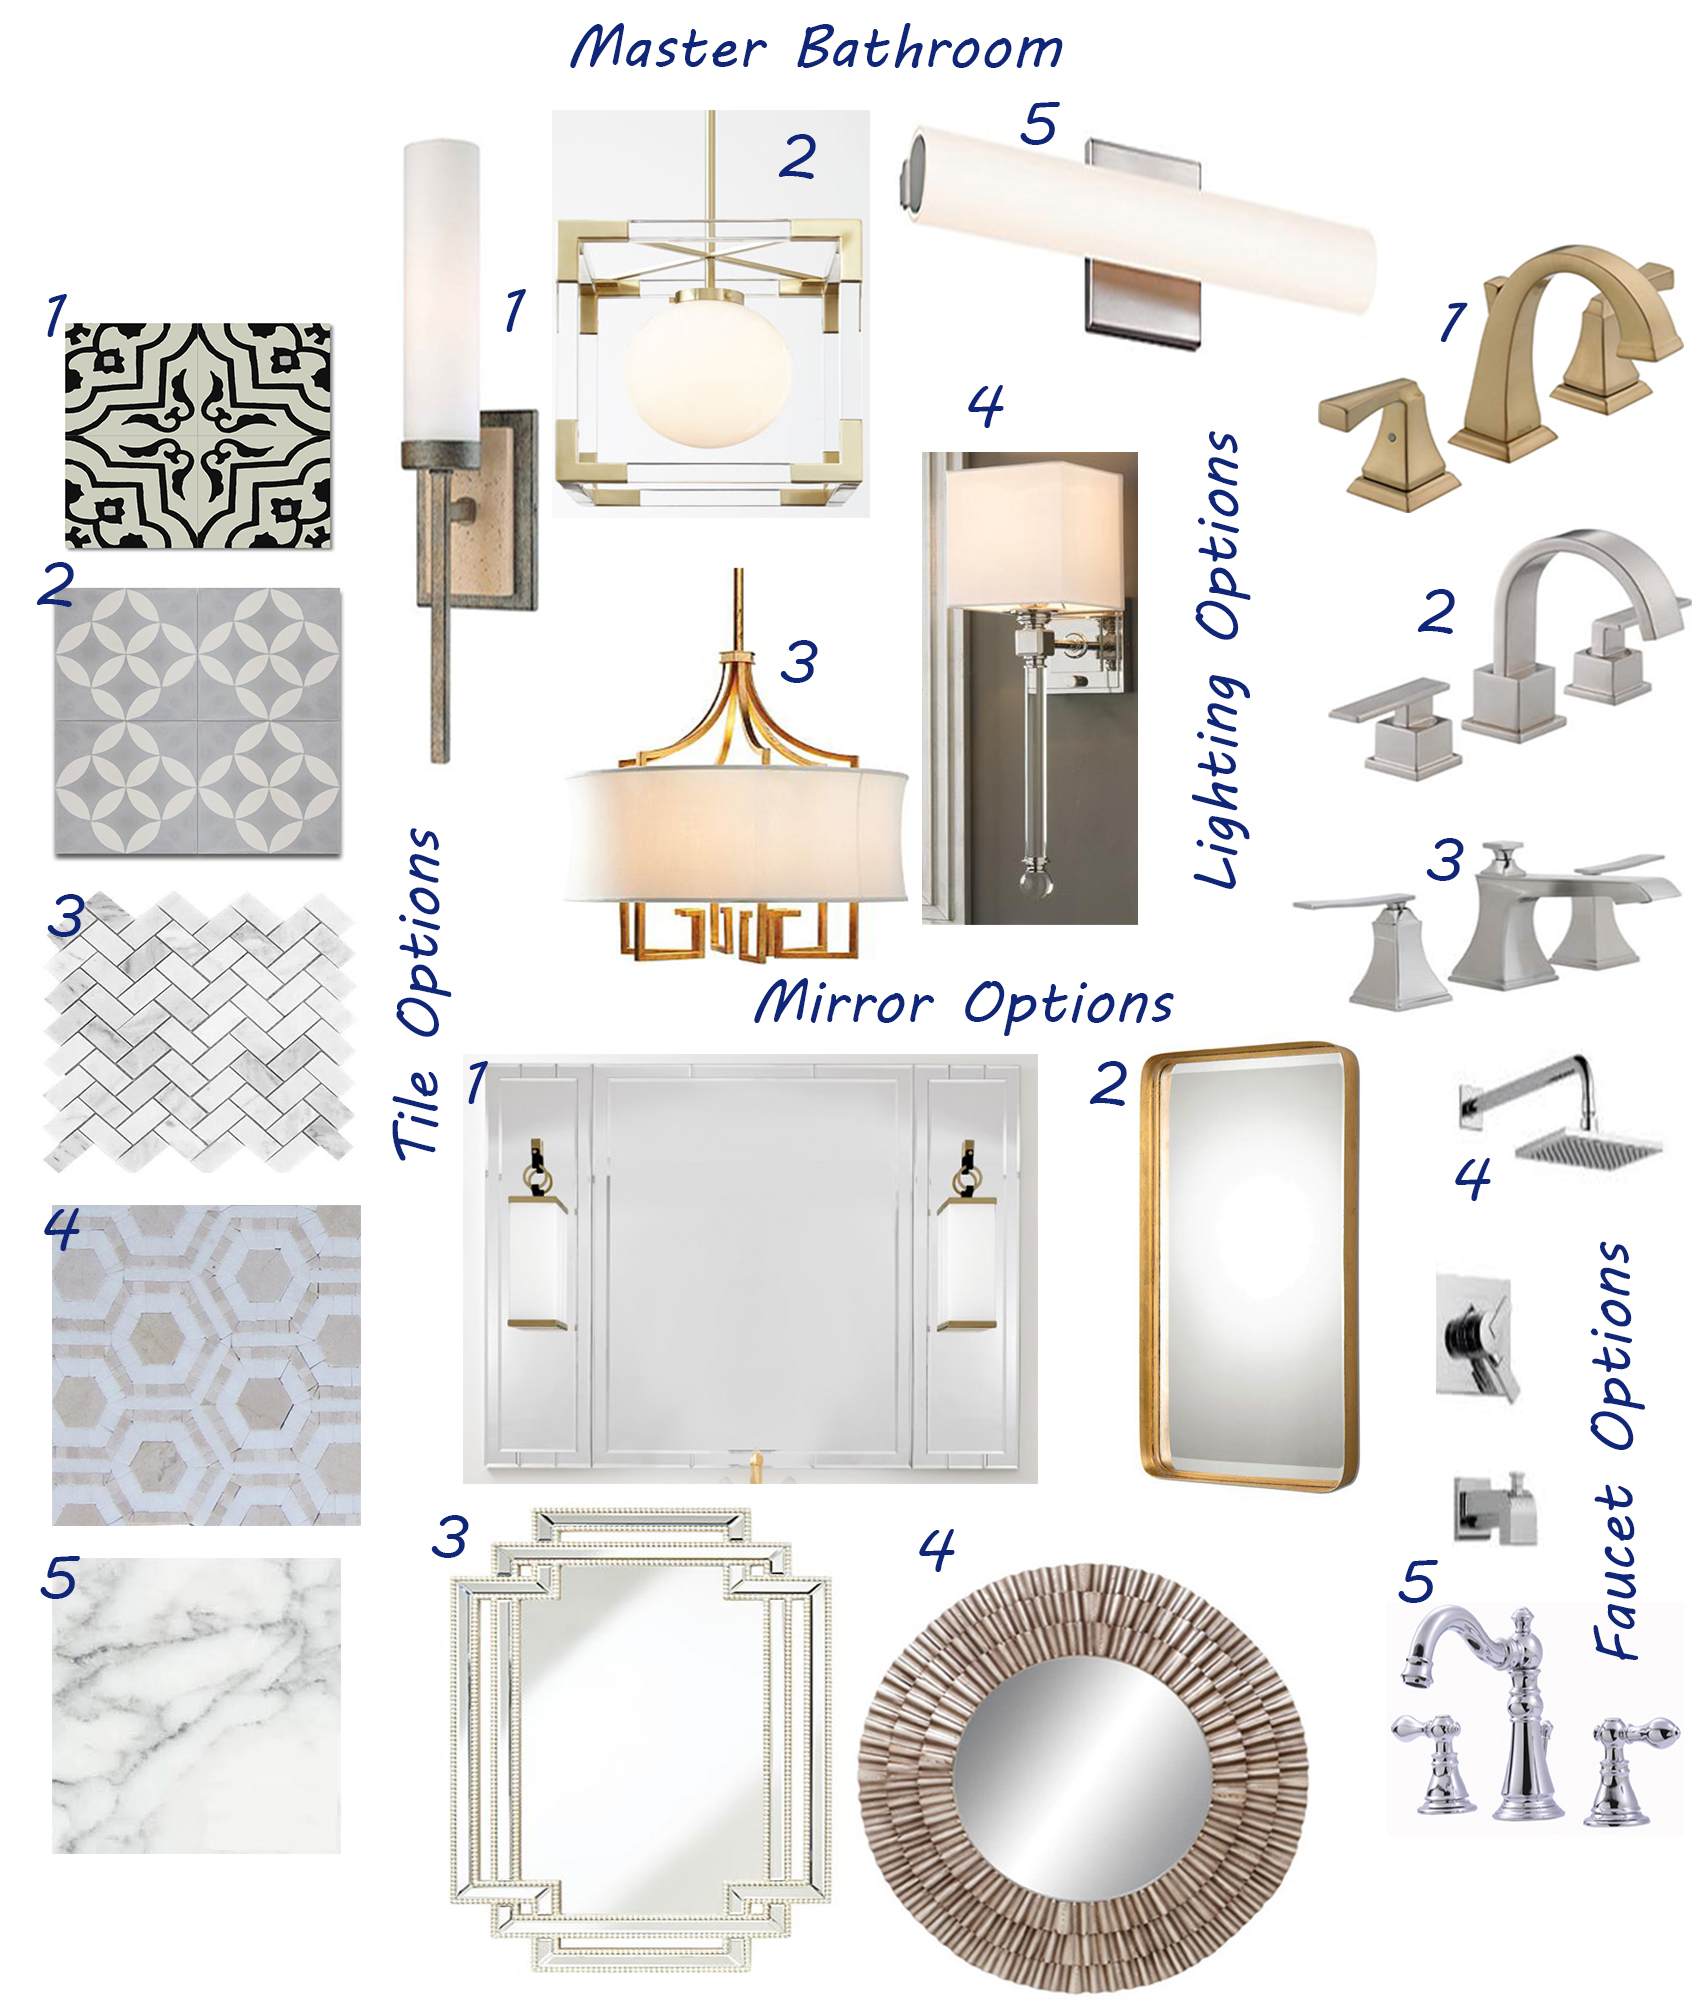 Tiles:  1 // 2 // 3 //4// 5 //  Mirrors:  1 // 2 // 3 // 4 //  Lighting:  1 // 2 // 3 // 4 // 5 //  Faucets:  1 // 2 //3// 4 // 5 //